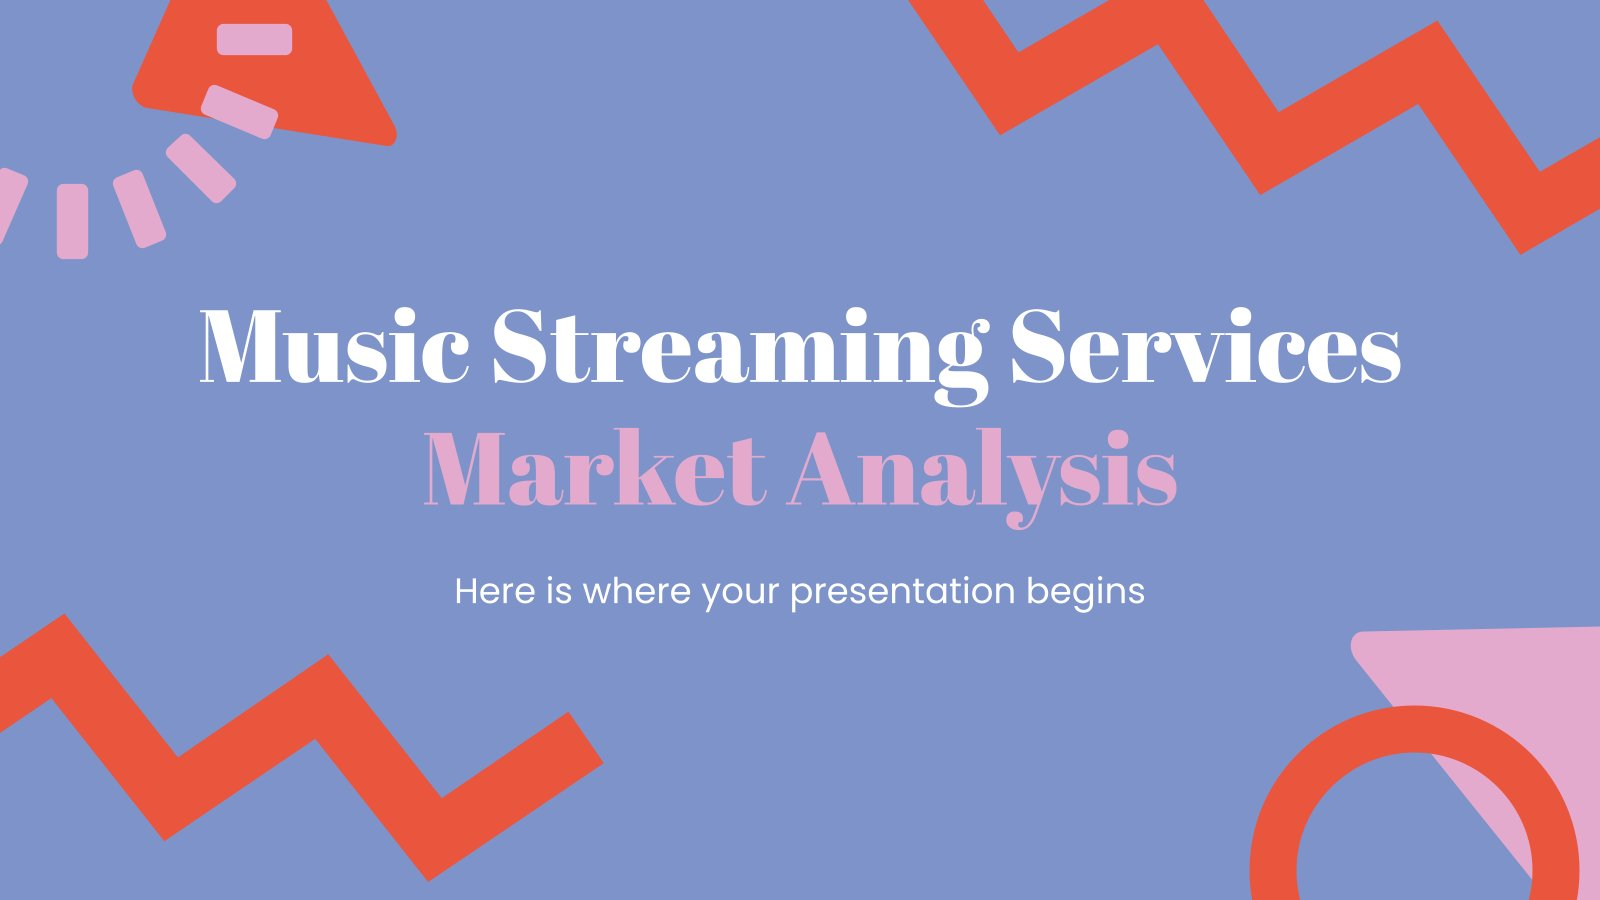 Music Streaming Services Market Analysis presentation template